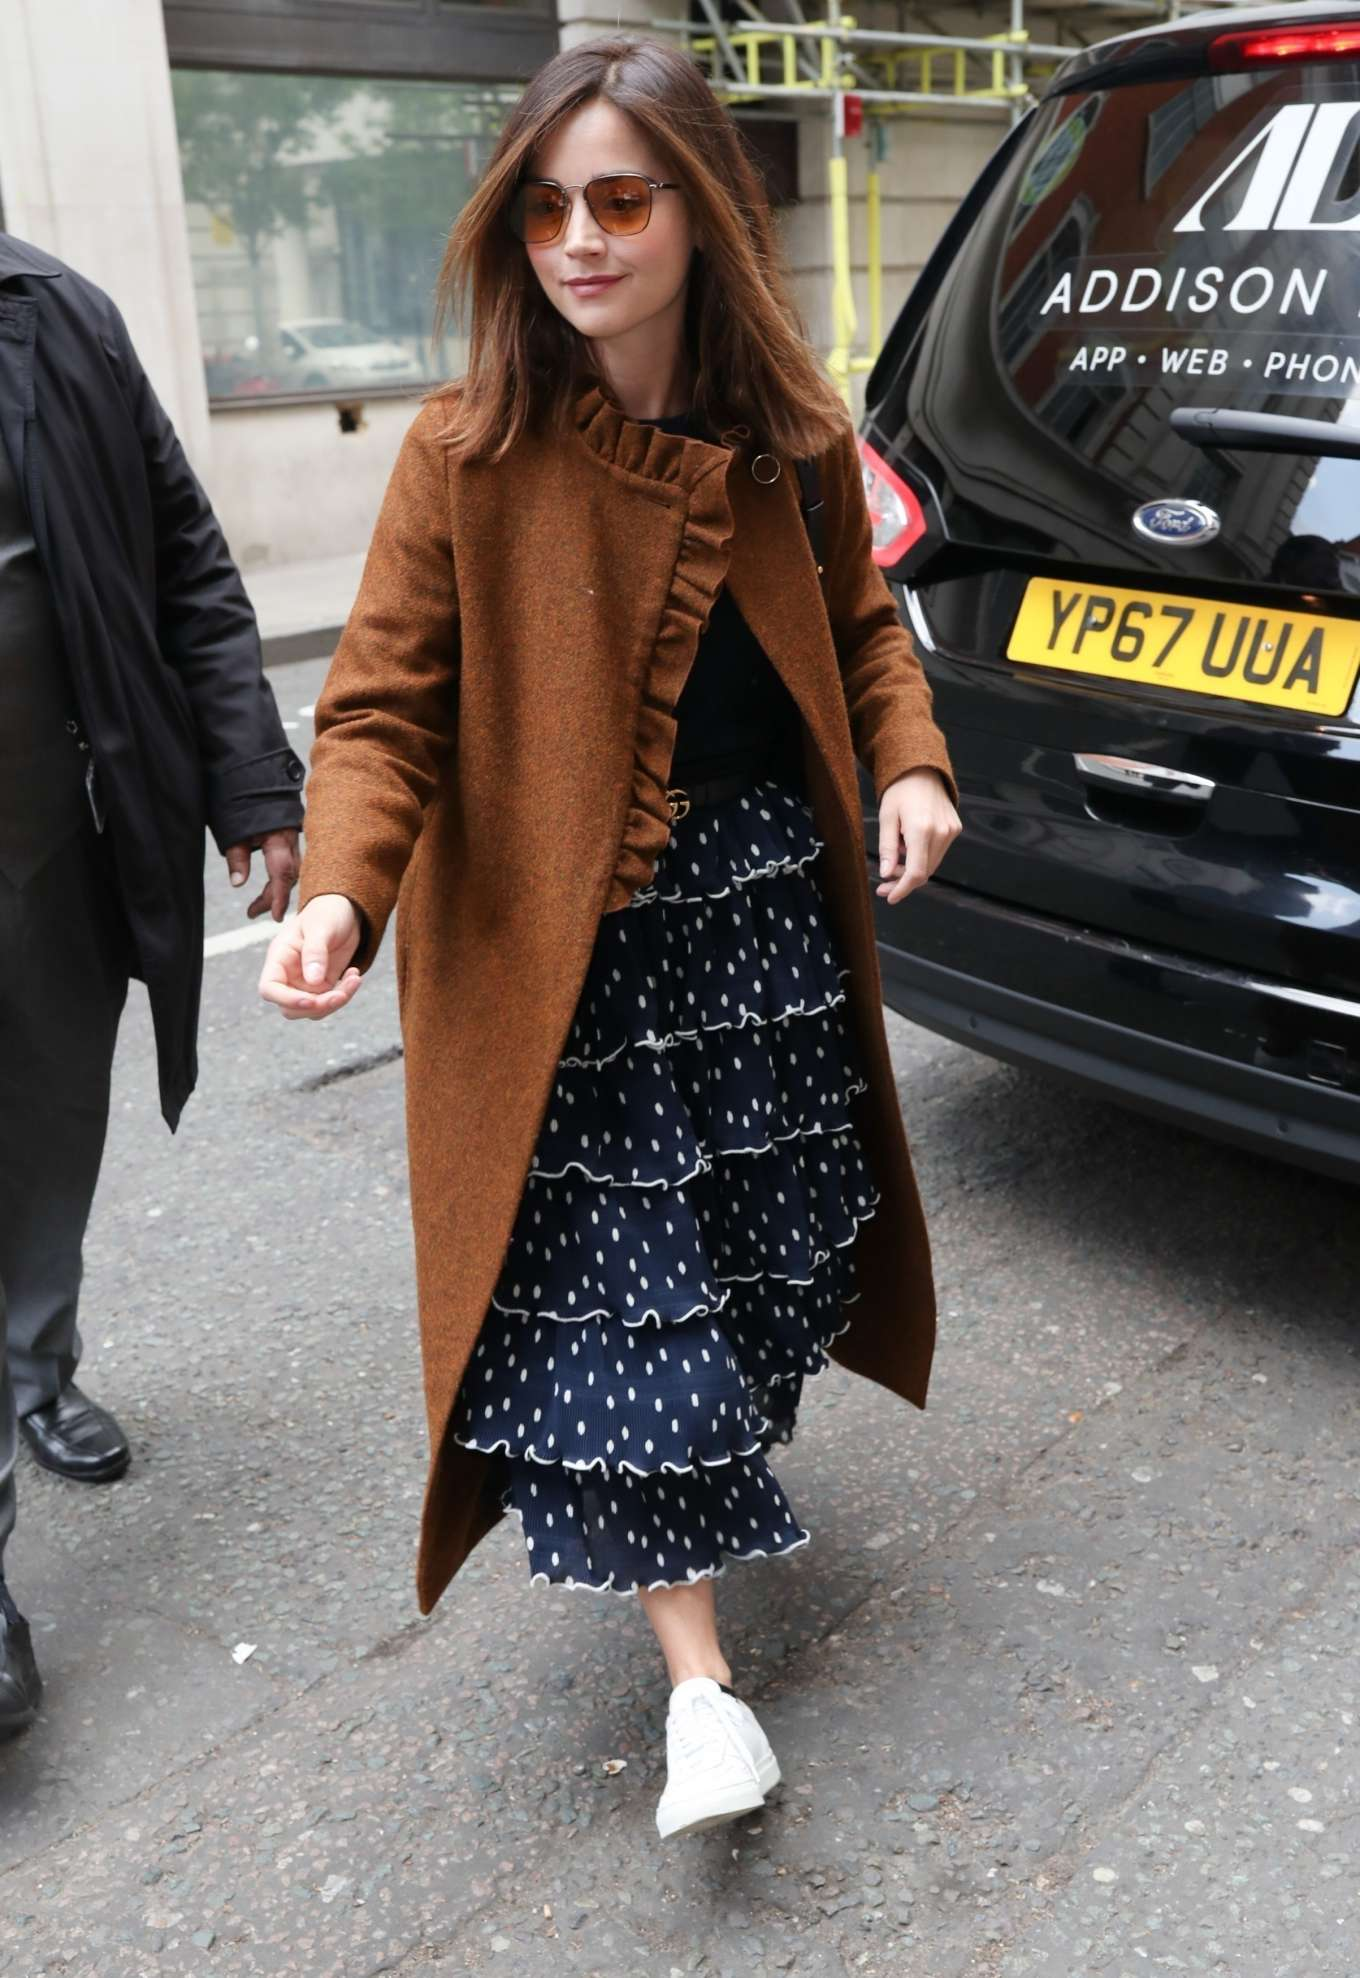 Jenna Louise Coleman - Arrives at Graham Norton's Radio 2 show in London